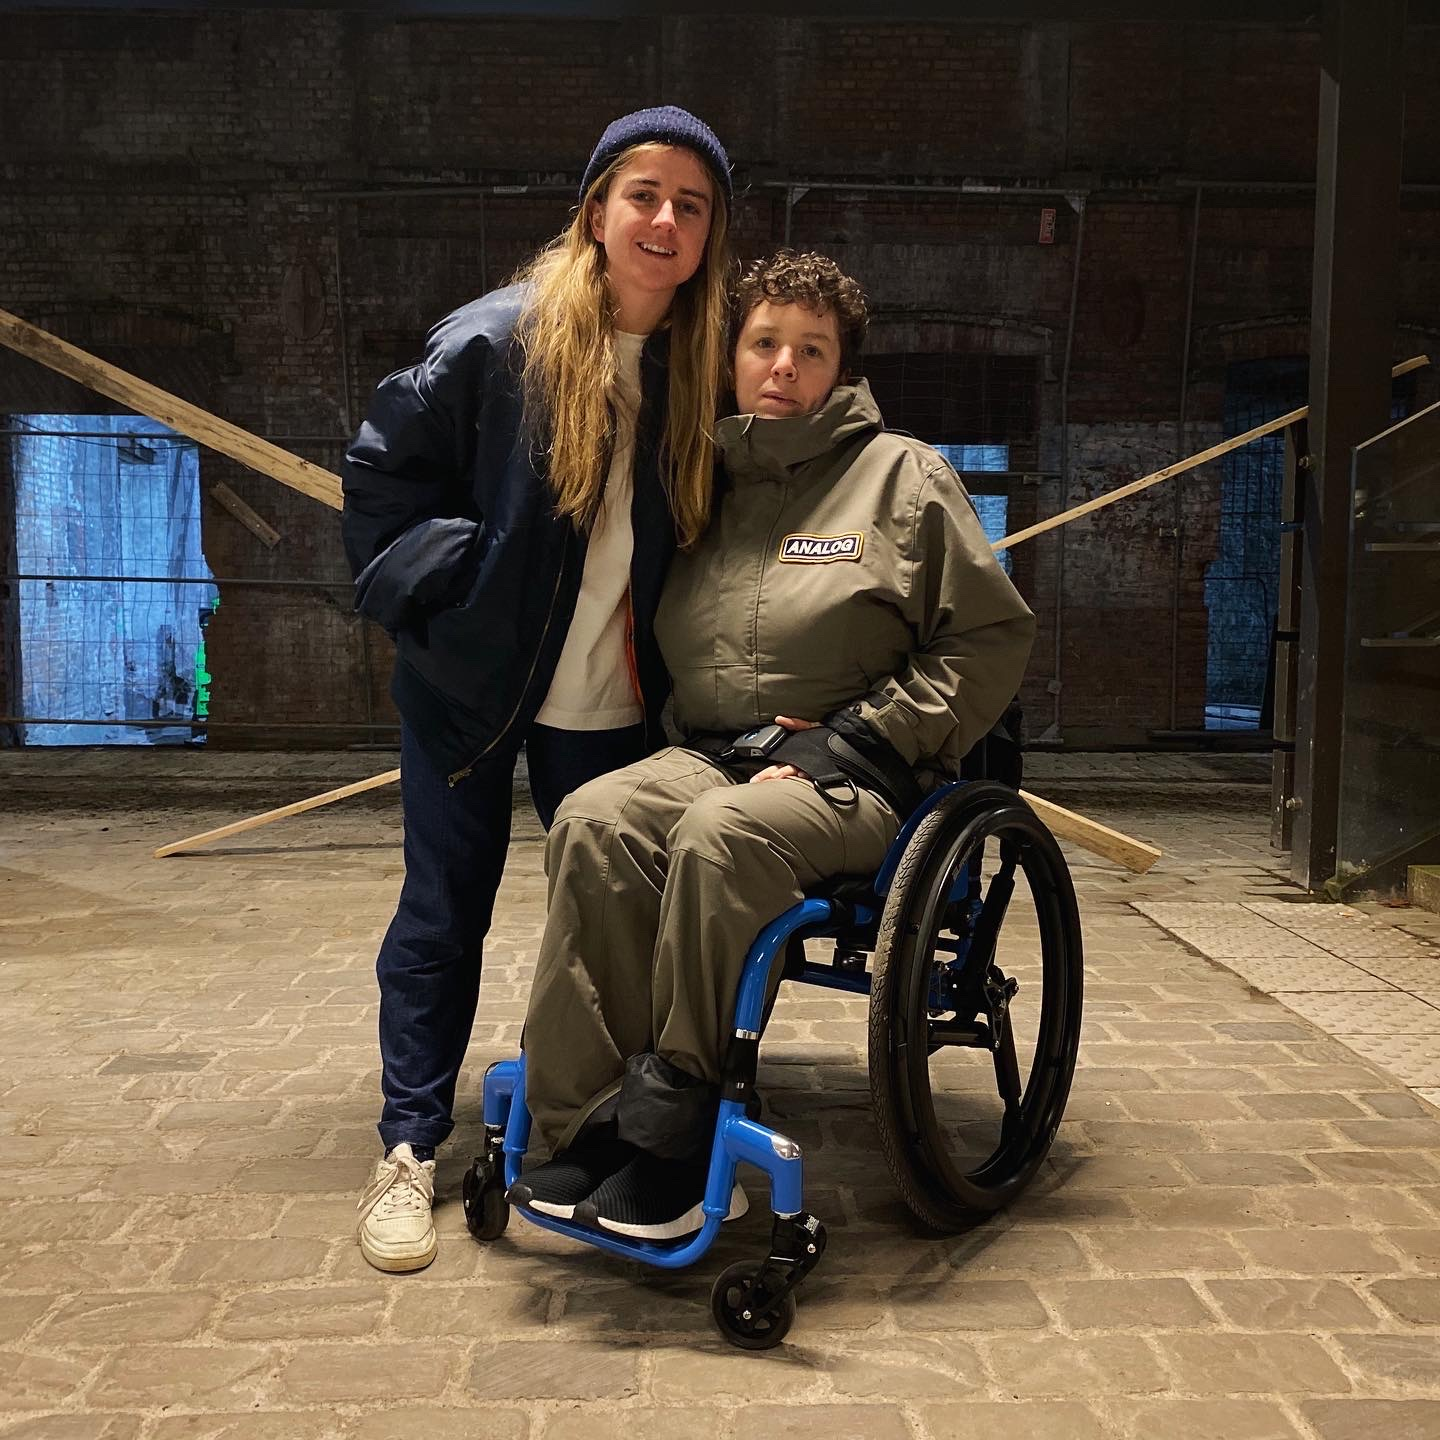 Touretteshero and Claire together on a recent trip to Ghent in Belgium. Touretteshero has short curly brown hair and is in a green khaki snow suit and sitting in her new RGK wheelchair. It is blue with black frogs legs castor and black shock absorbing wheels. Claire is wearing a navy wool speckled beanie and navy air force one jacket and blue trousers.